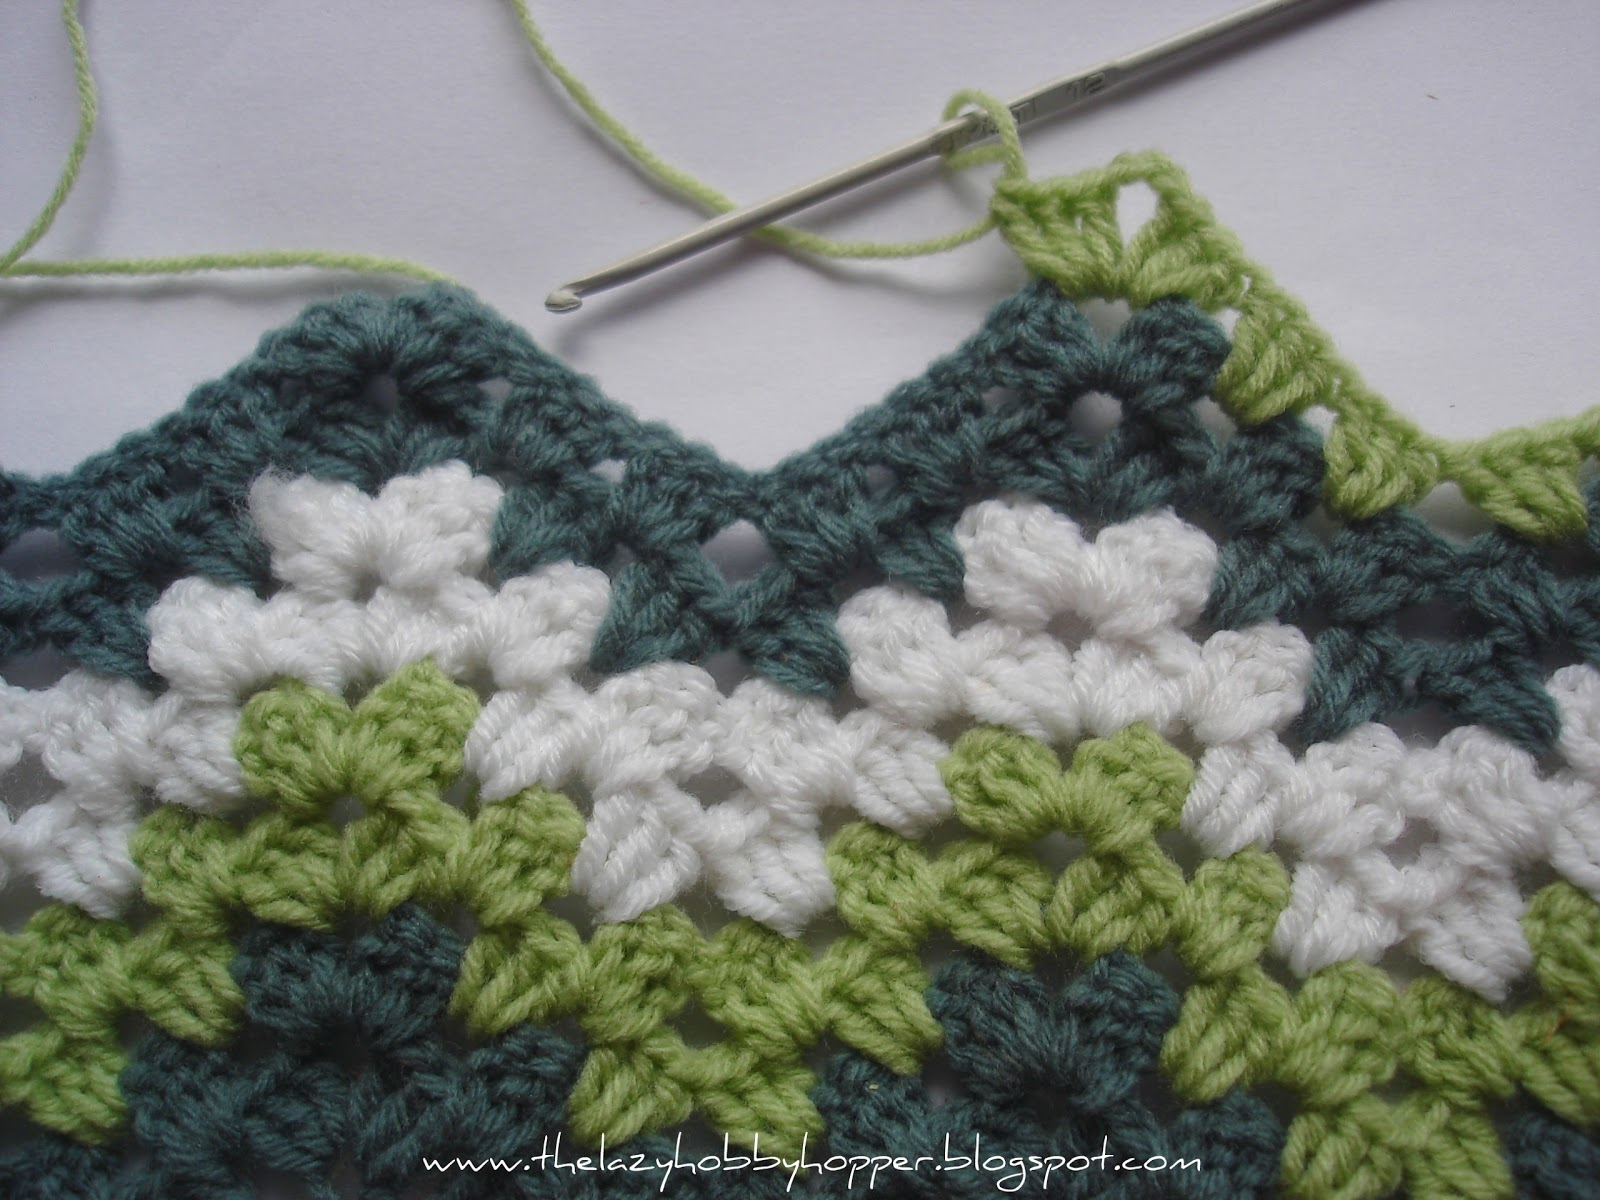 Crochet Ripple Afghan Pattern Instructions : The Lazy Hobbyhopper: How to crochet granny ripple